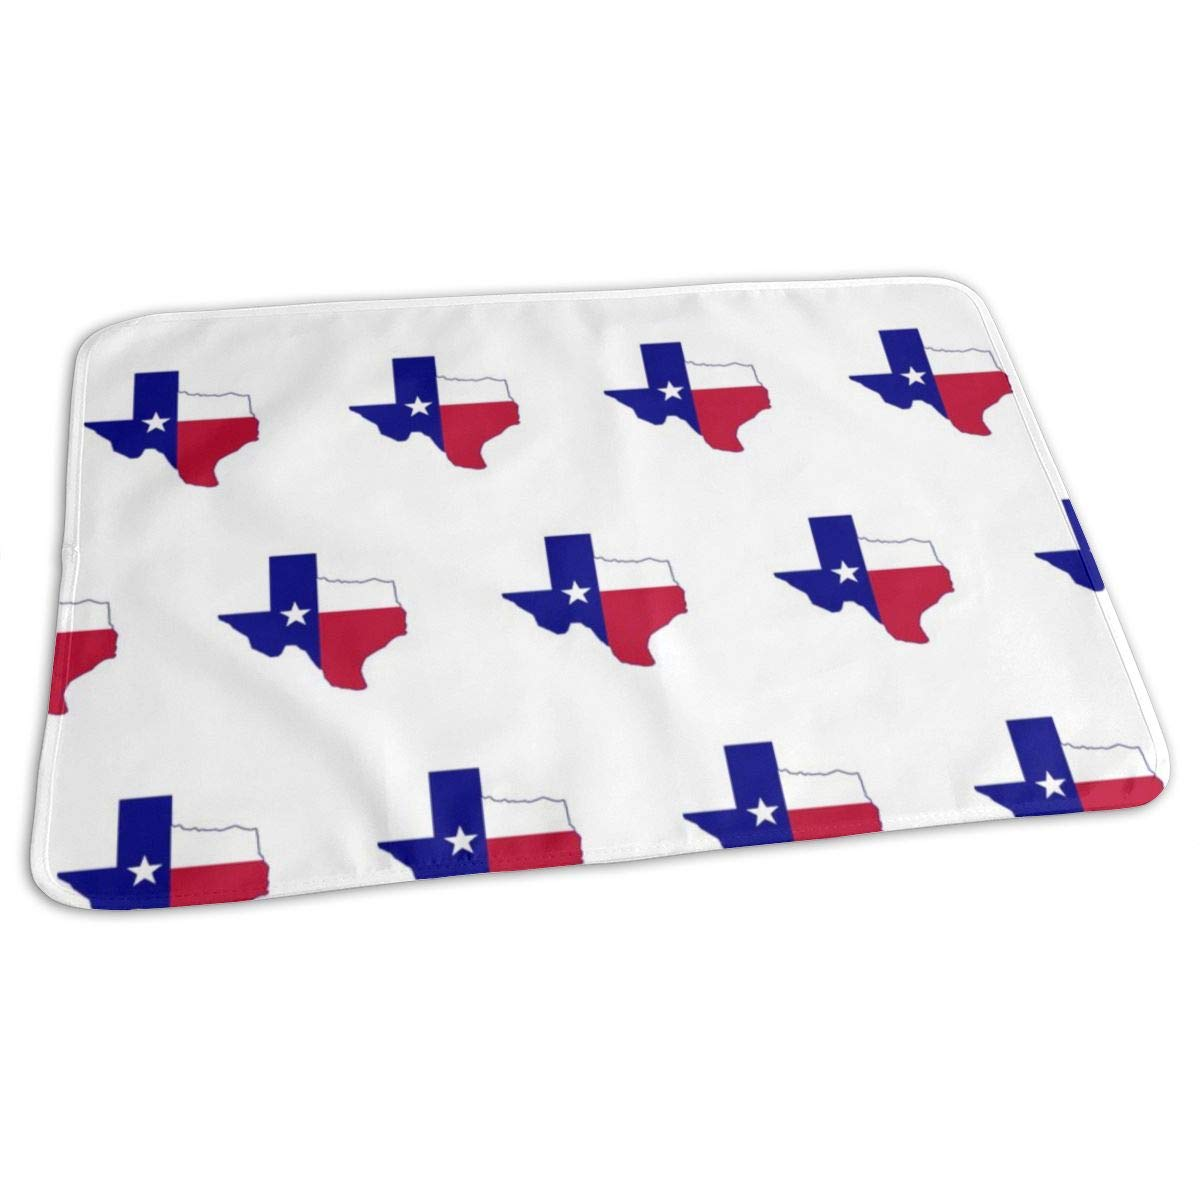 Texas Flag Map Baby Portable Reusable Changing Pad Mat 19.7x27.5 inch